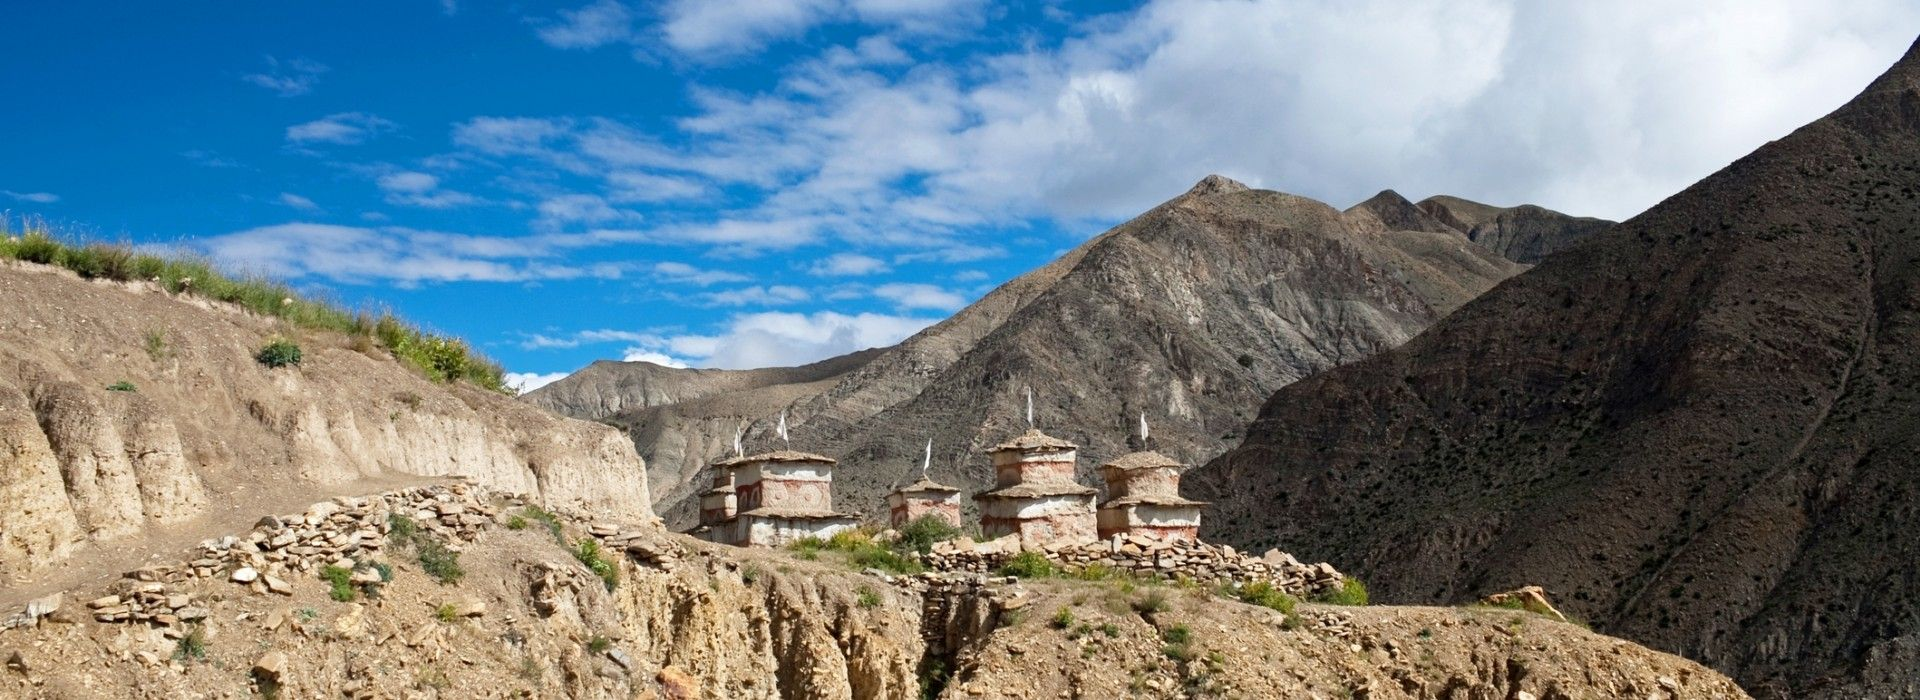 Upper Dolpo Trek: Ancient Bon stupa in the Dolpo region